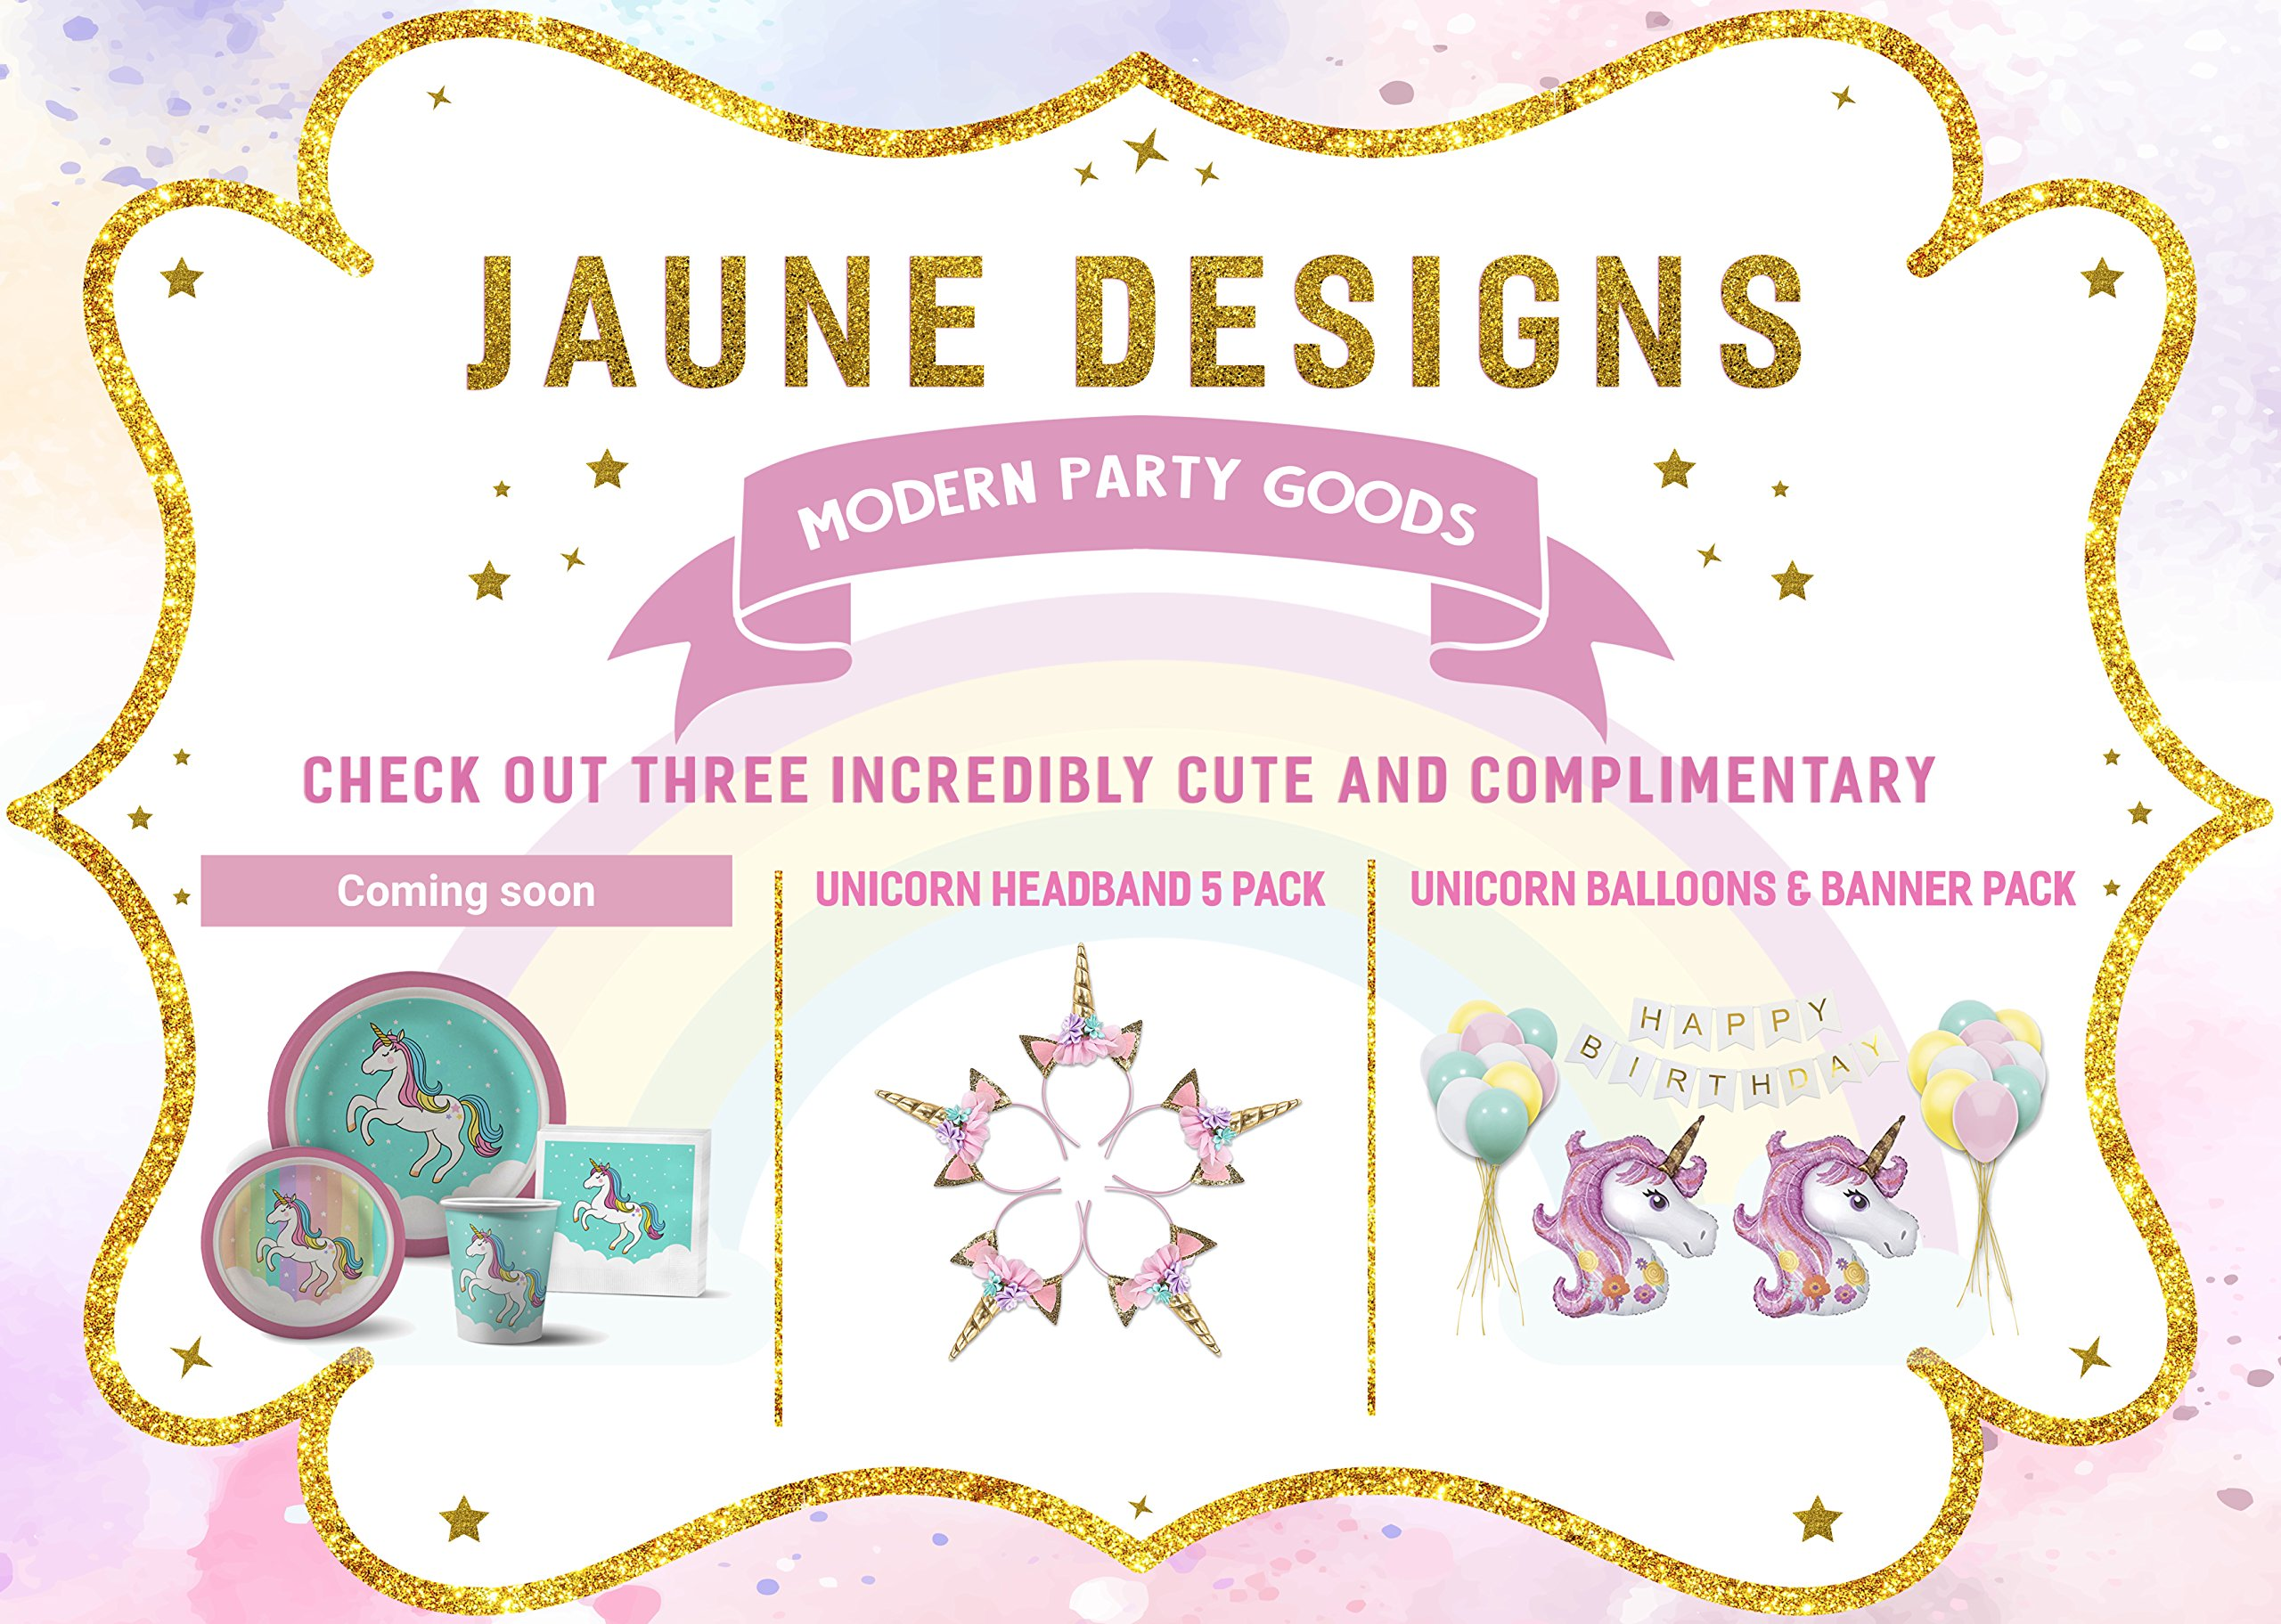 JAUNE DESIGNS Handmade Unicorn Headbands Party Supplies - Value 5 Pack One Size fits All by Party Dash 9